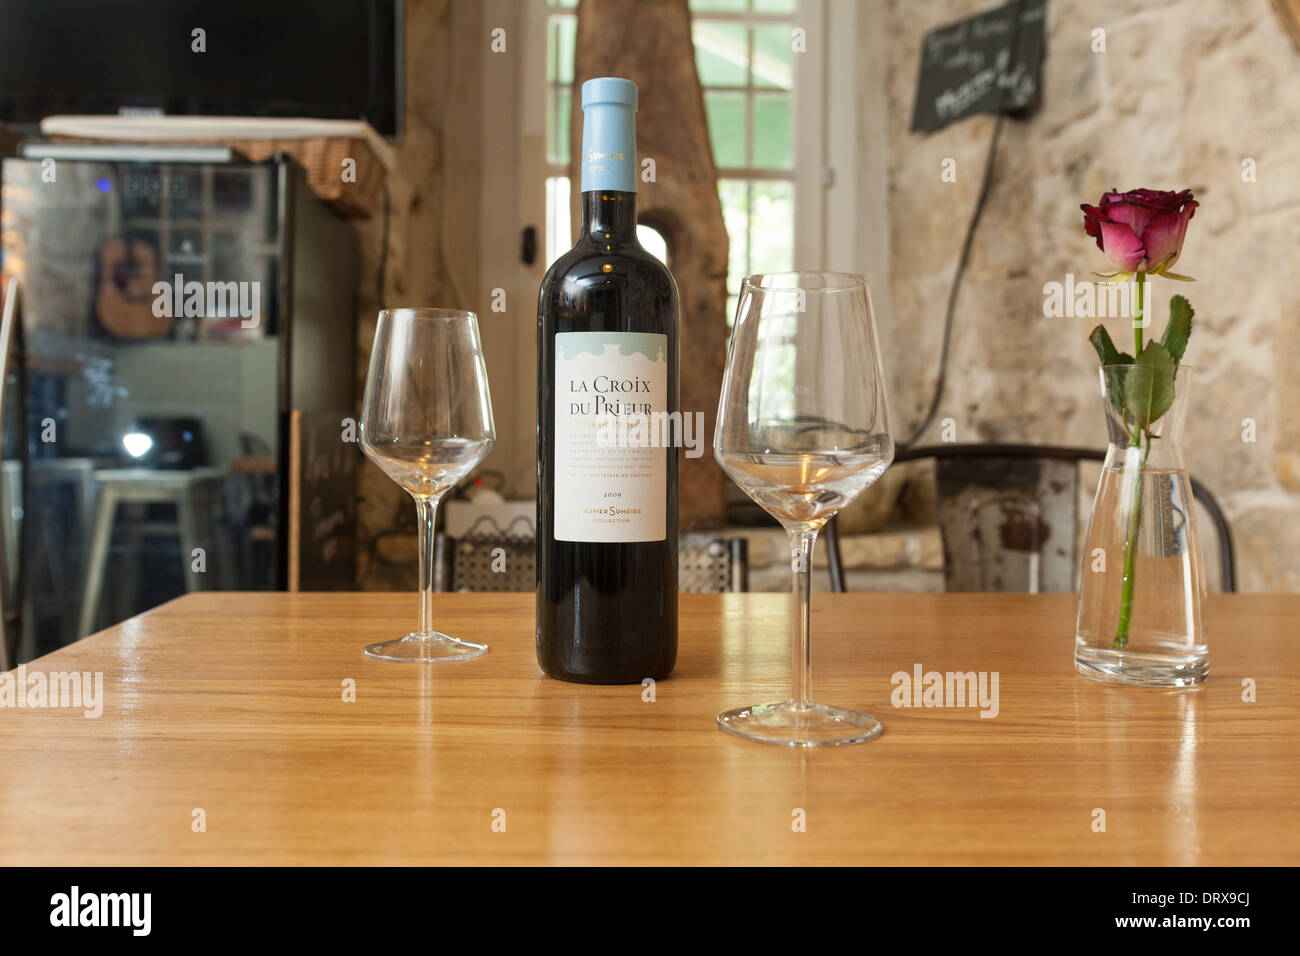 VENCE, FRANCE - SEPTEMBER 16: Table with wine and glasses at Bed and Bistrot on 16 September, 2013 in Vence, France. - Stock Image